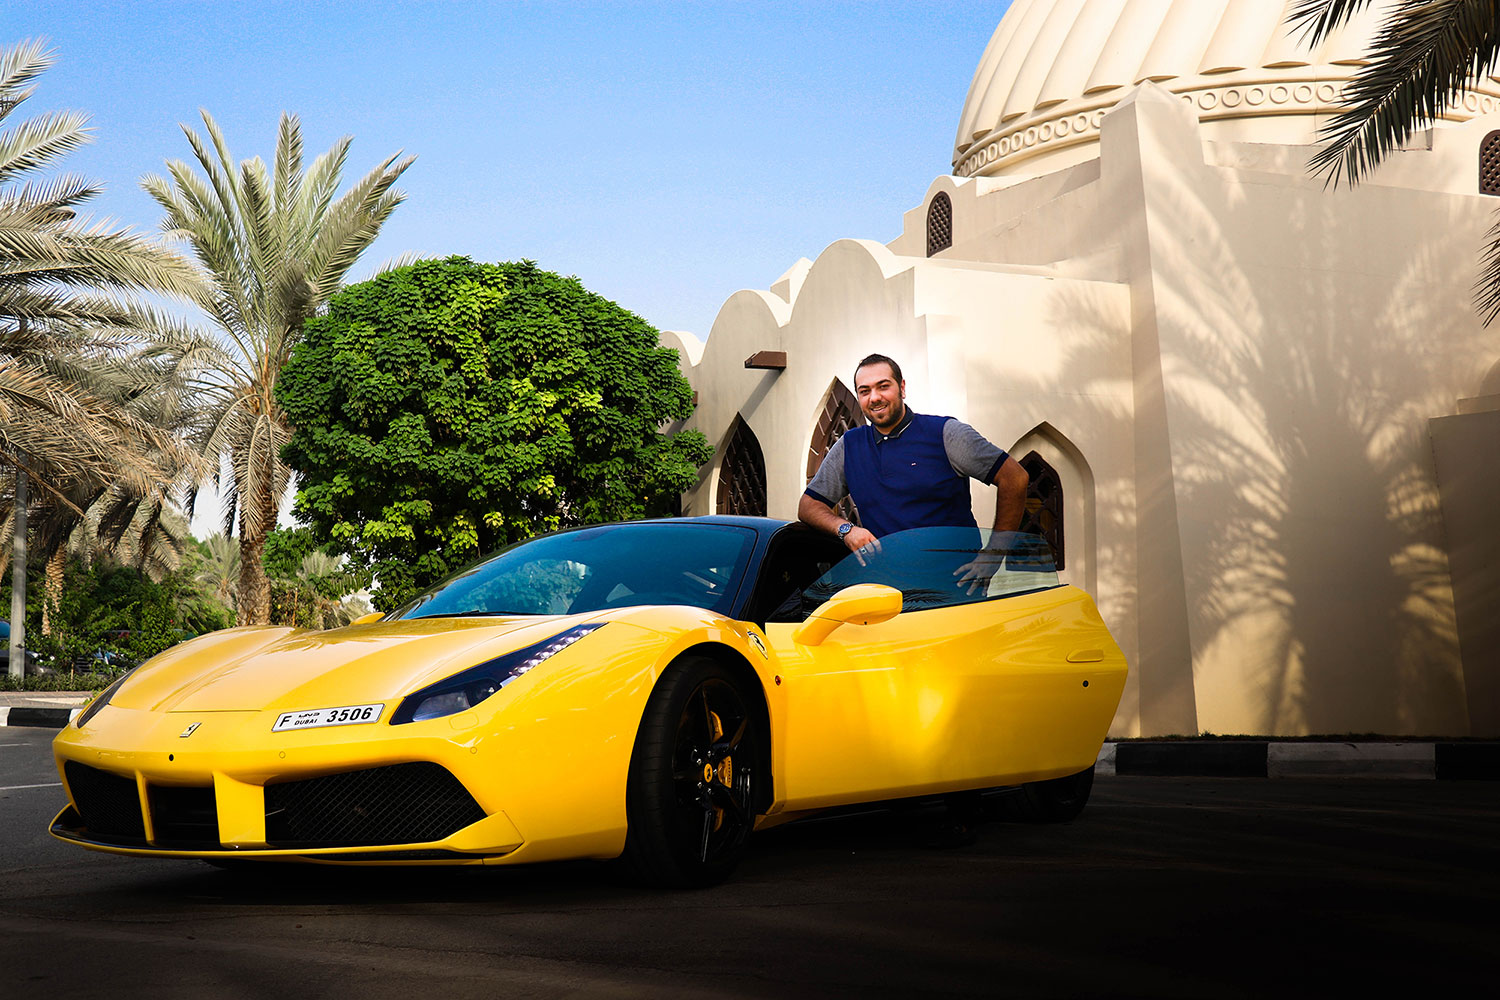 Luxury Car For Rent In Dubai